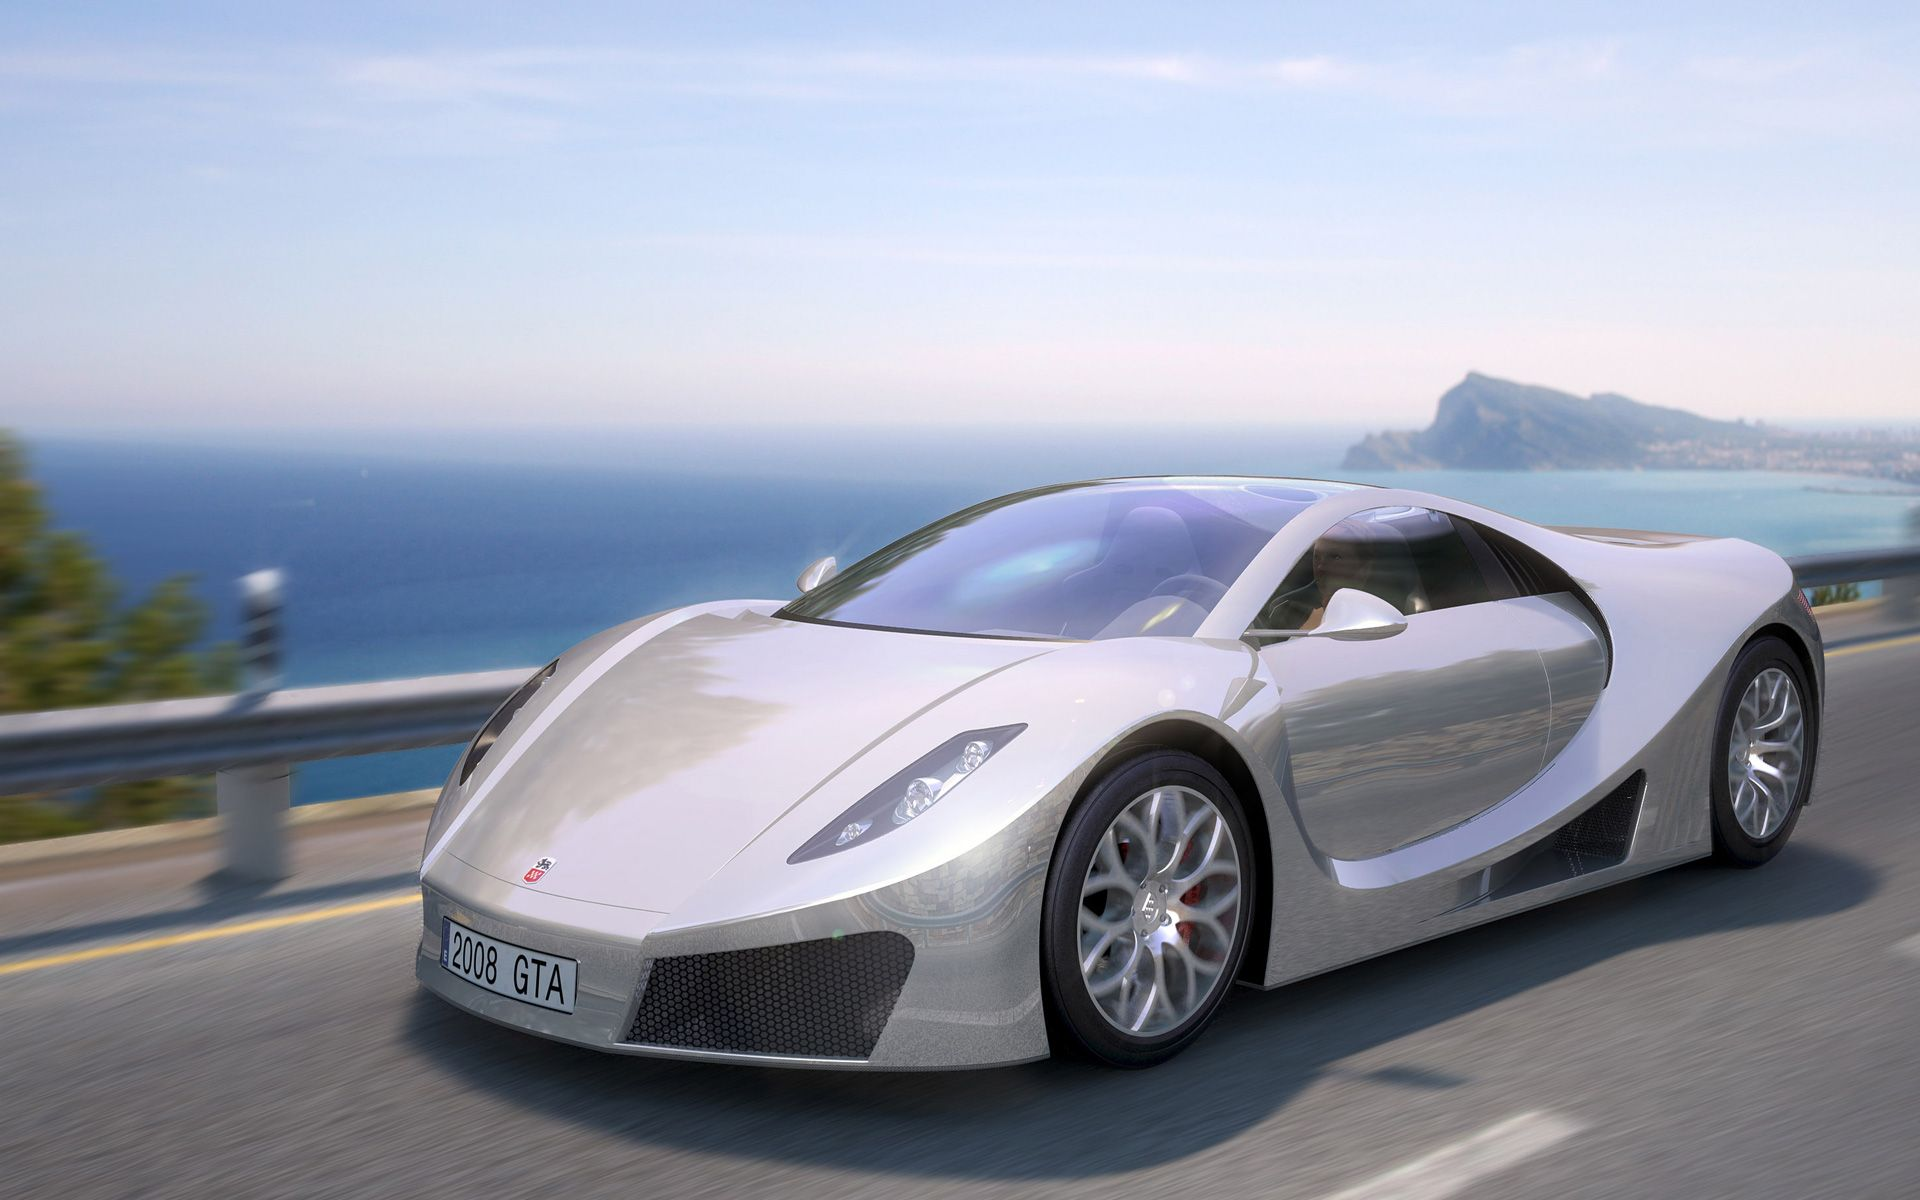 Sport car gta concept super sport car 3